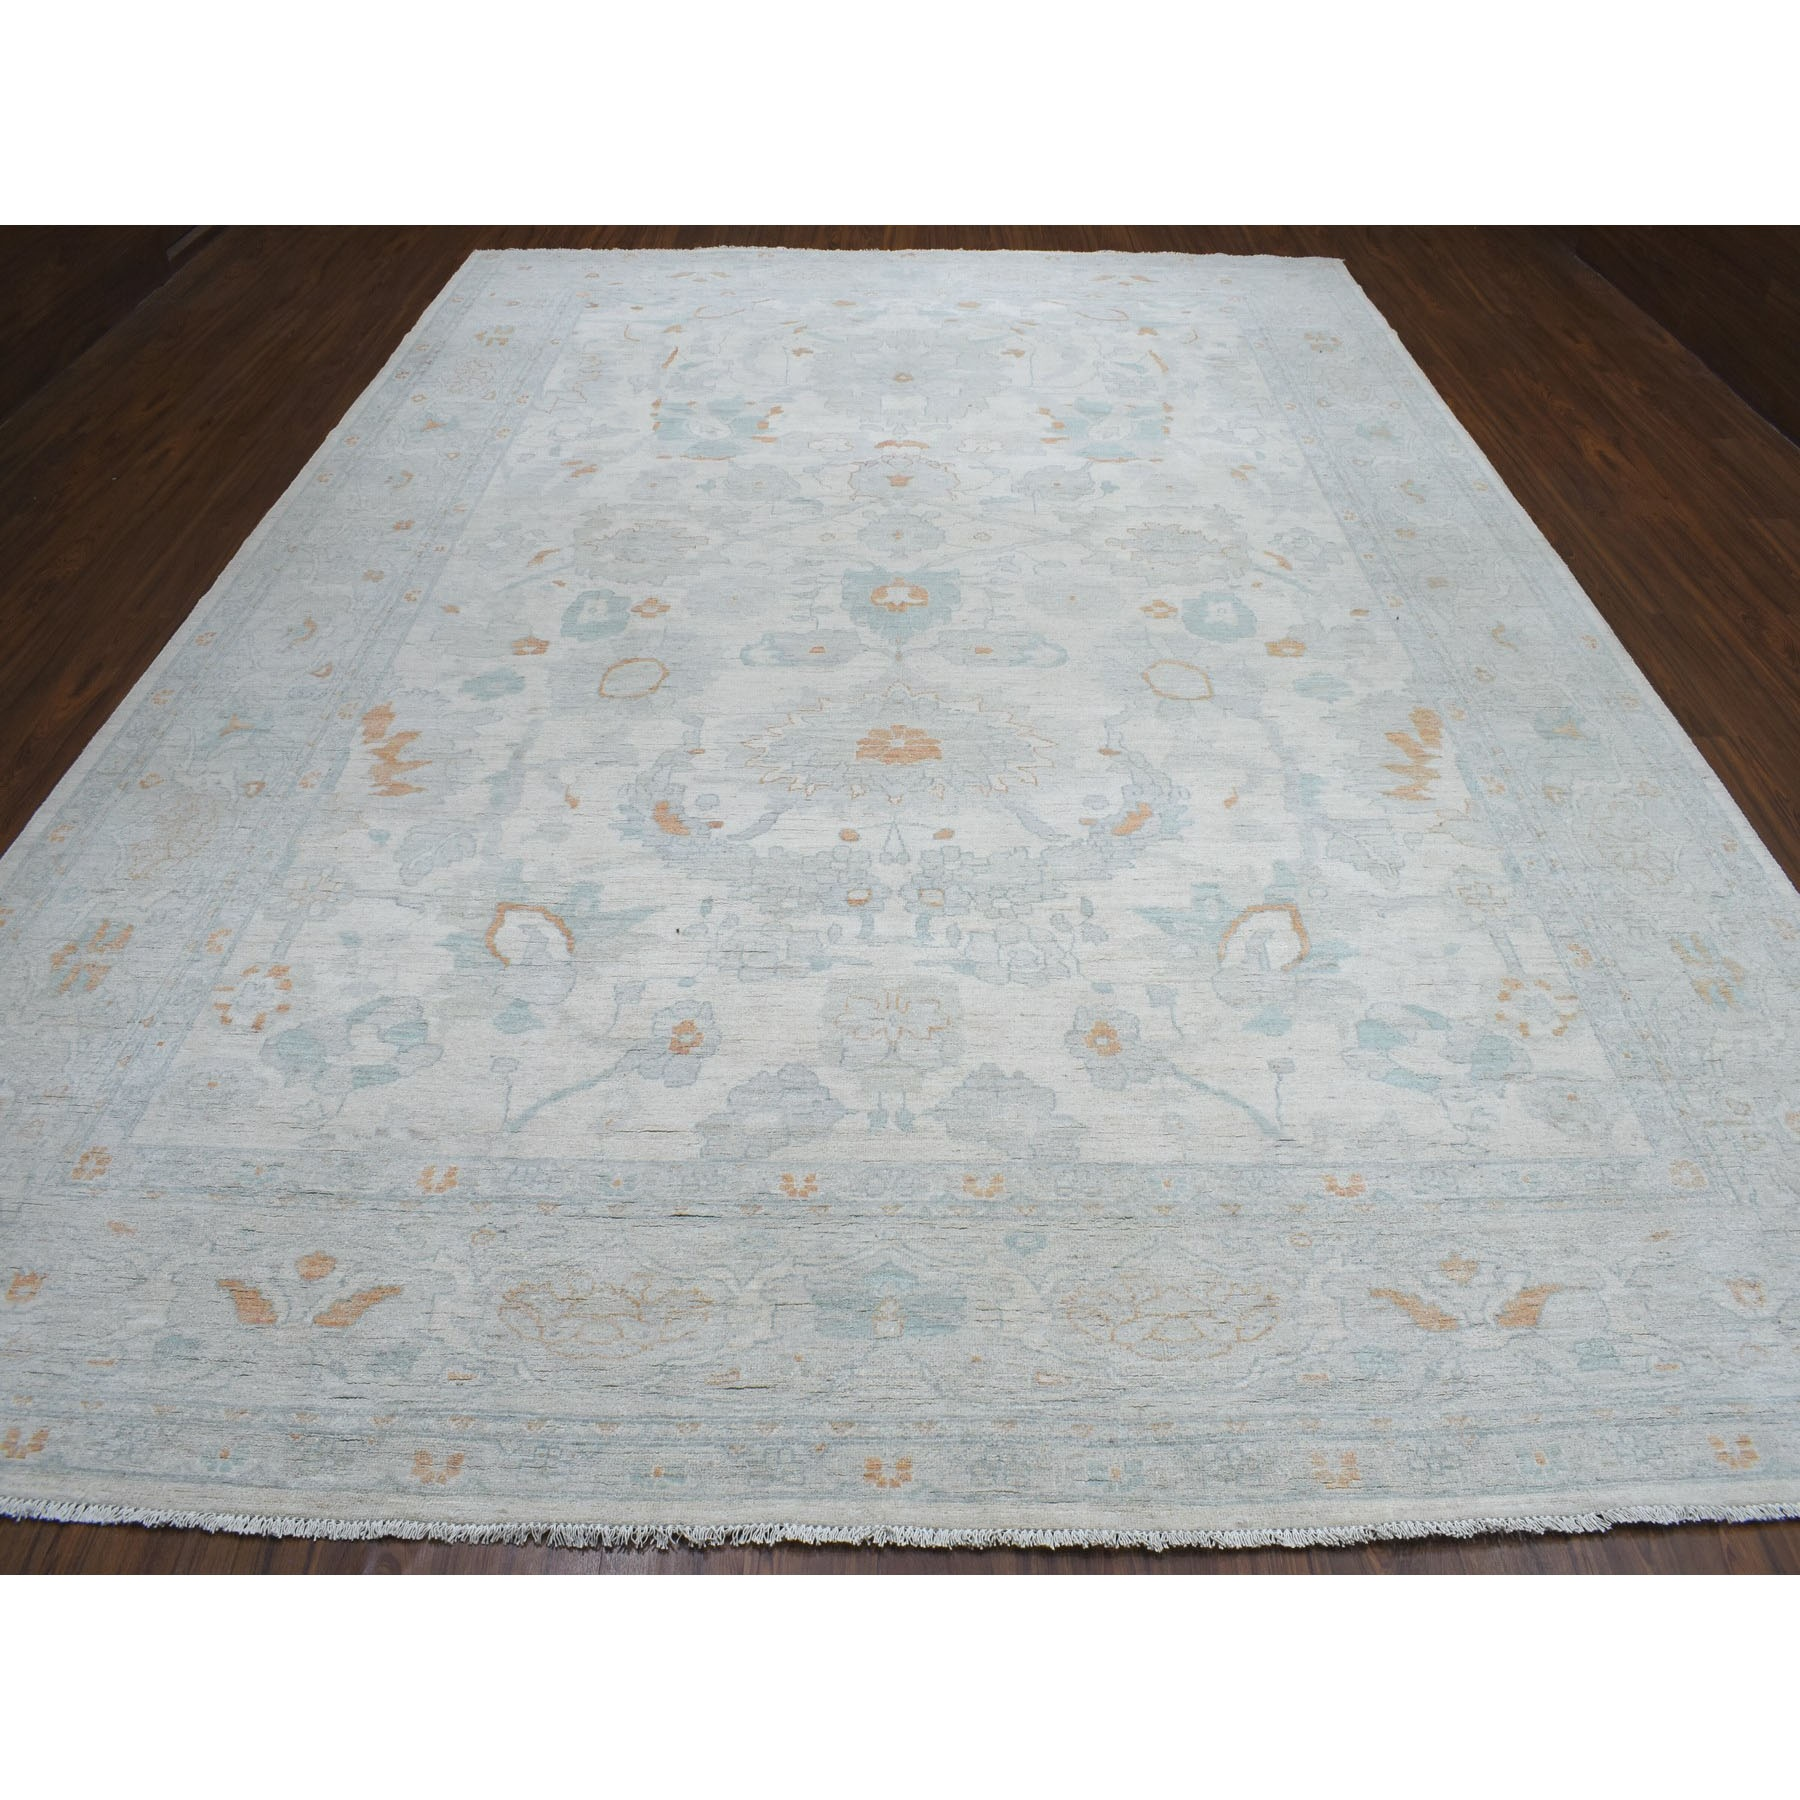 "10'x13'10"" White Wash Peshawar Pure Wool Hand Knotted Oriental Rug"